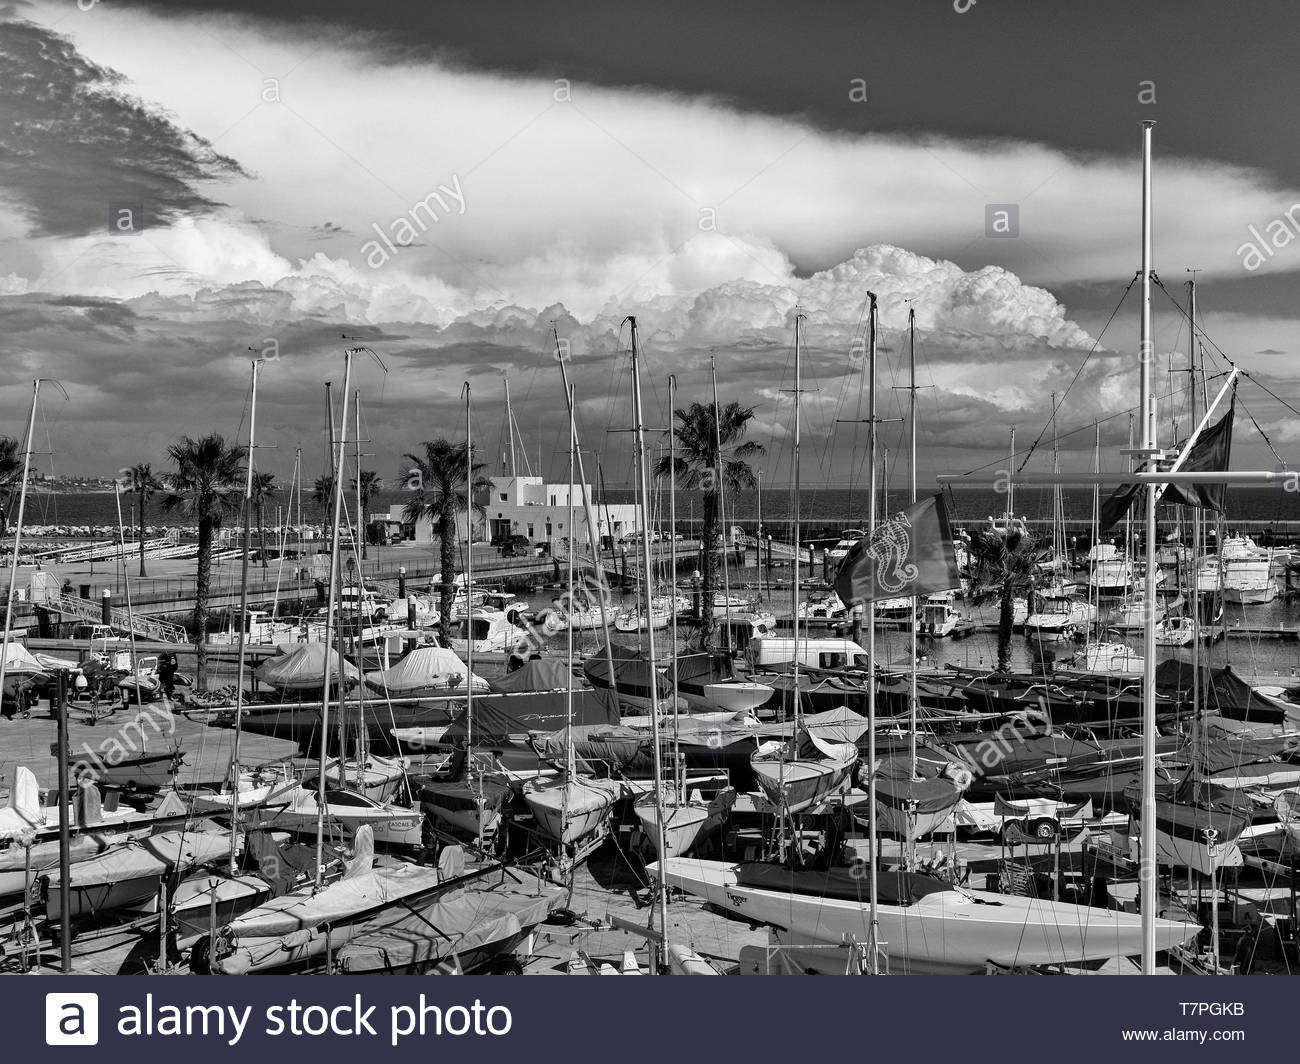 High contrast black and white storm clouds over Cascais Marina, Portugal Stock Photo